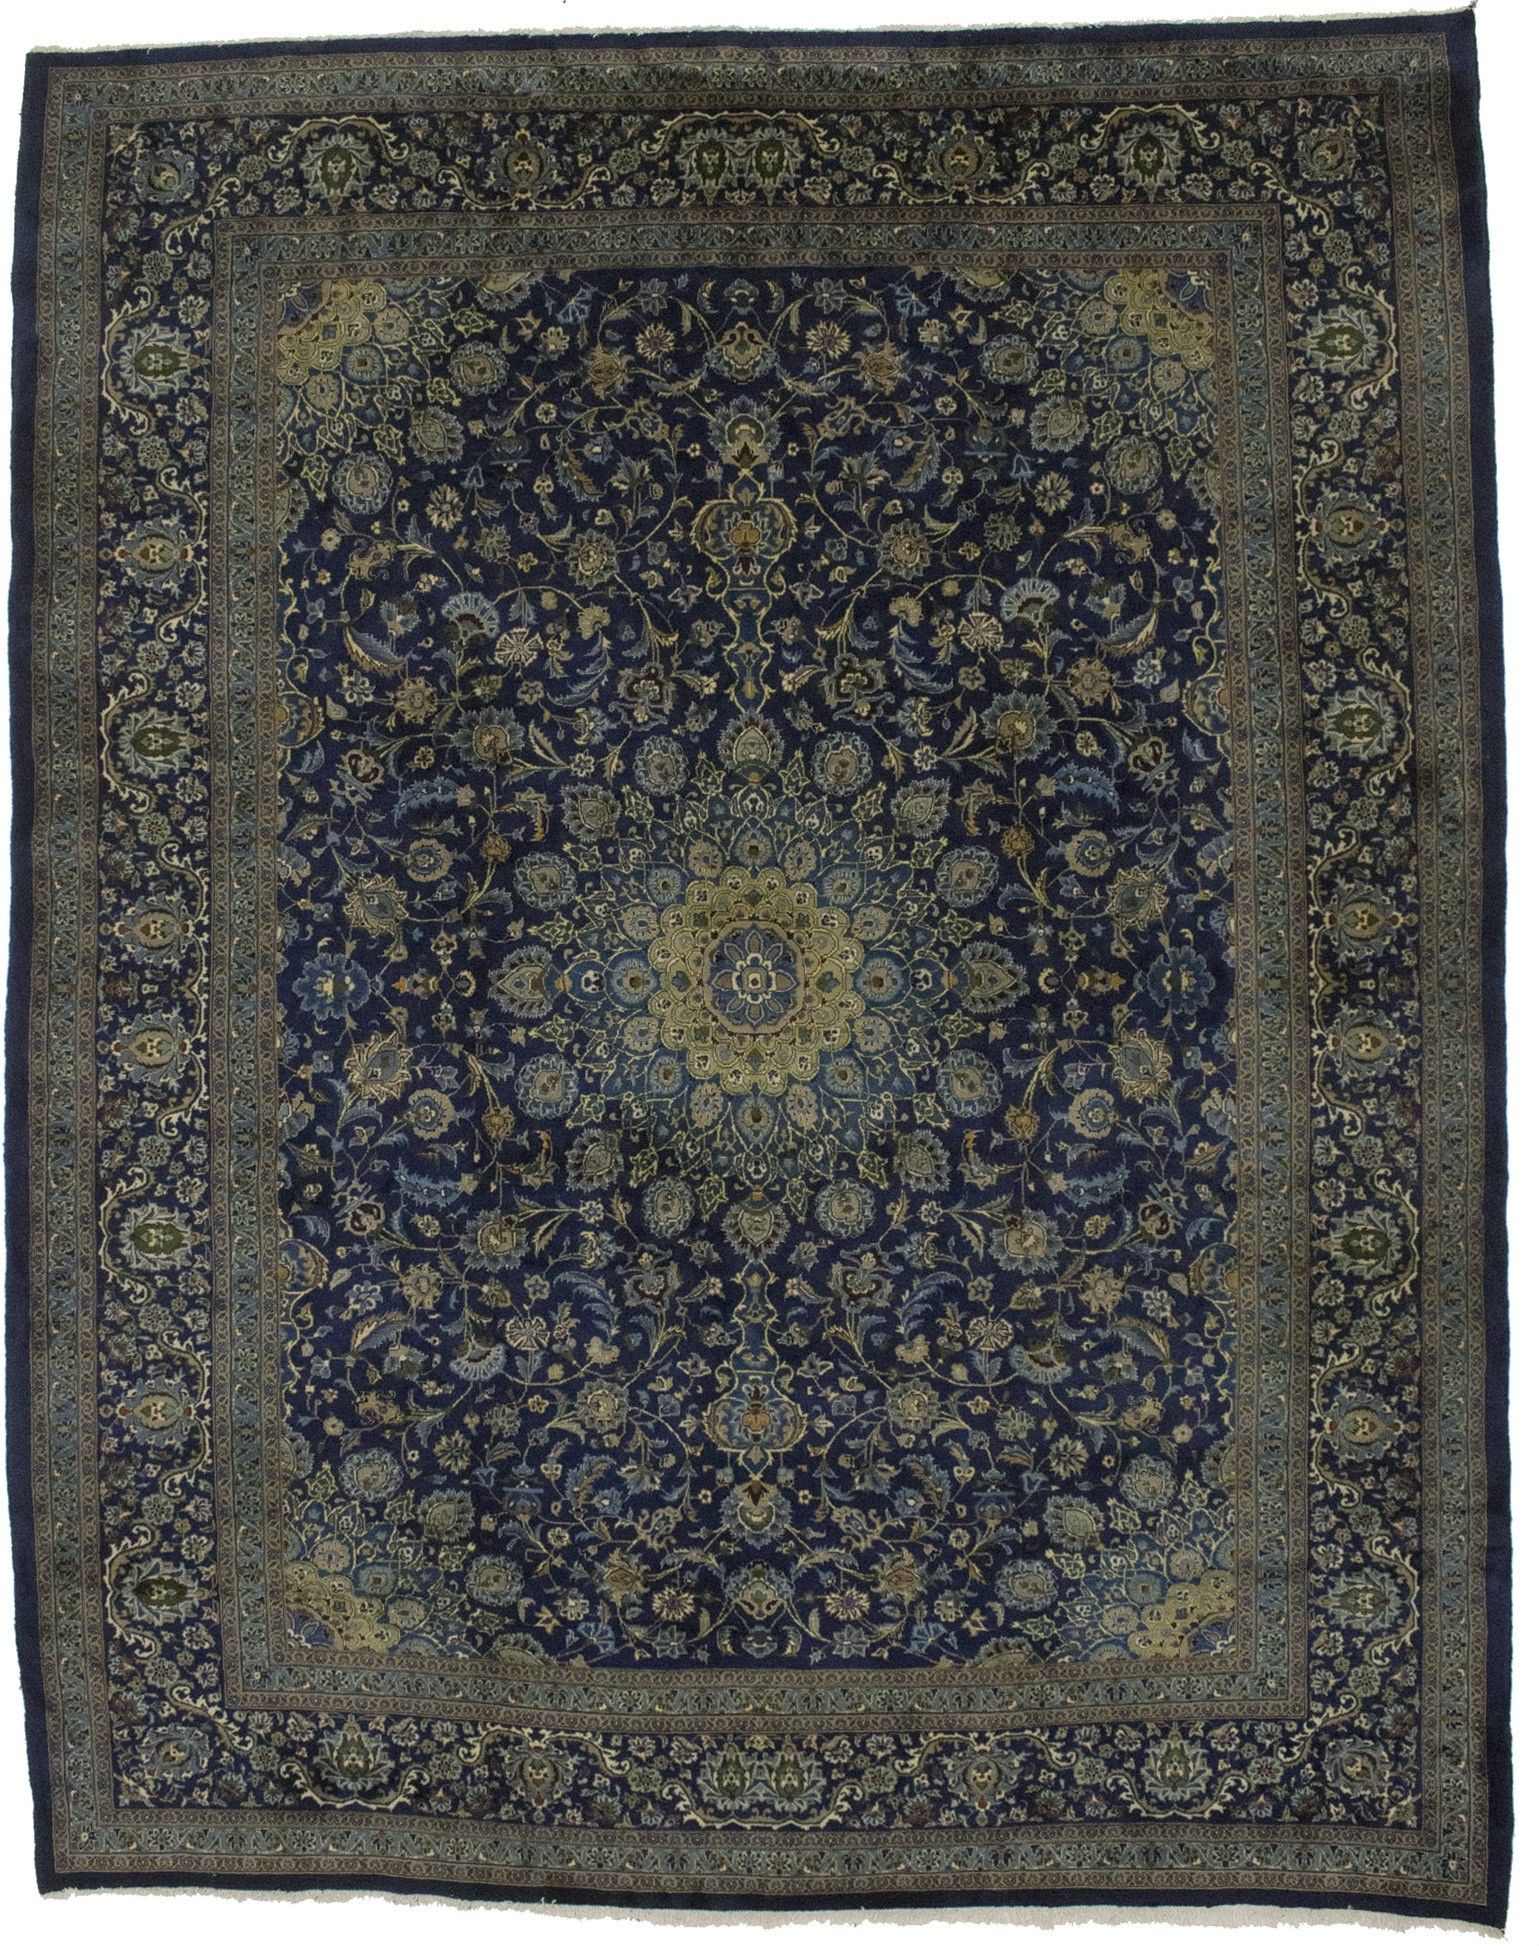 Antique Persian Rugs Delightful Traditional Vintage Kashmar Persian Rug Oriental Area Carpet 10x Blue Oriental Rug Antique Persian Carpet Antique Persian Rug